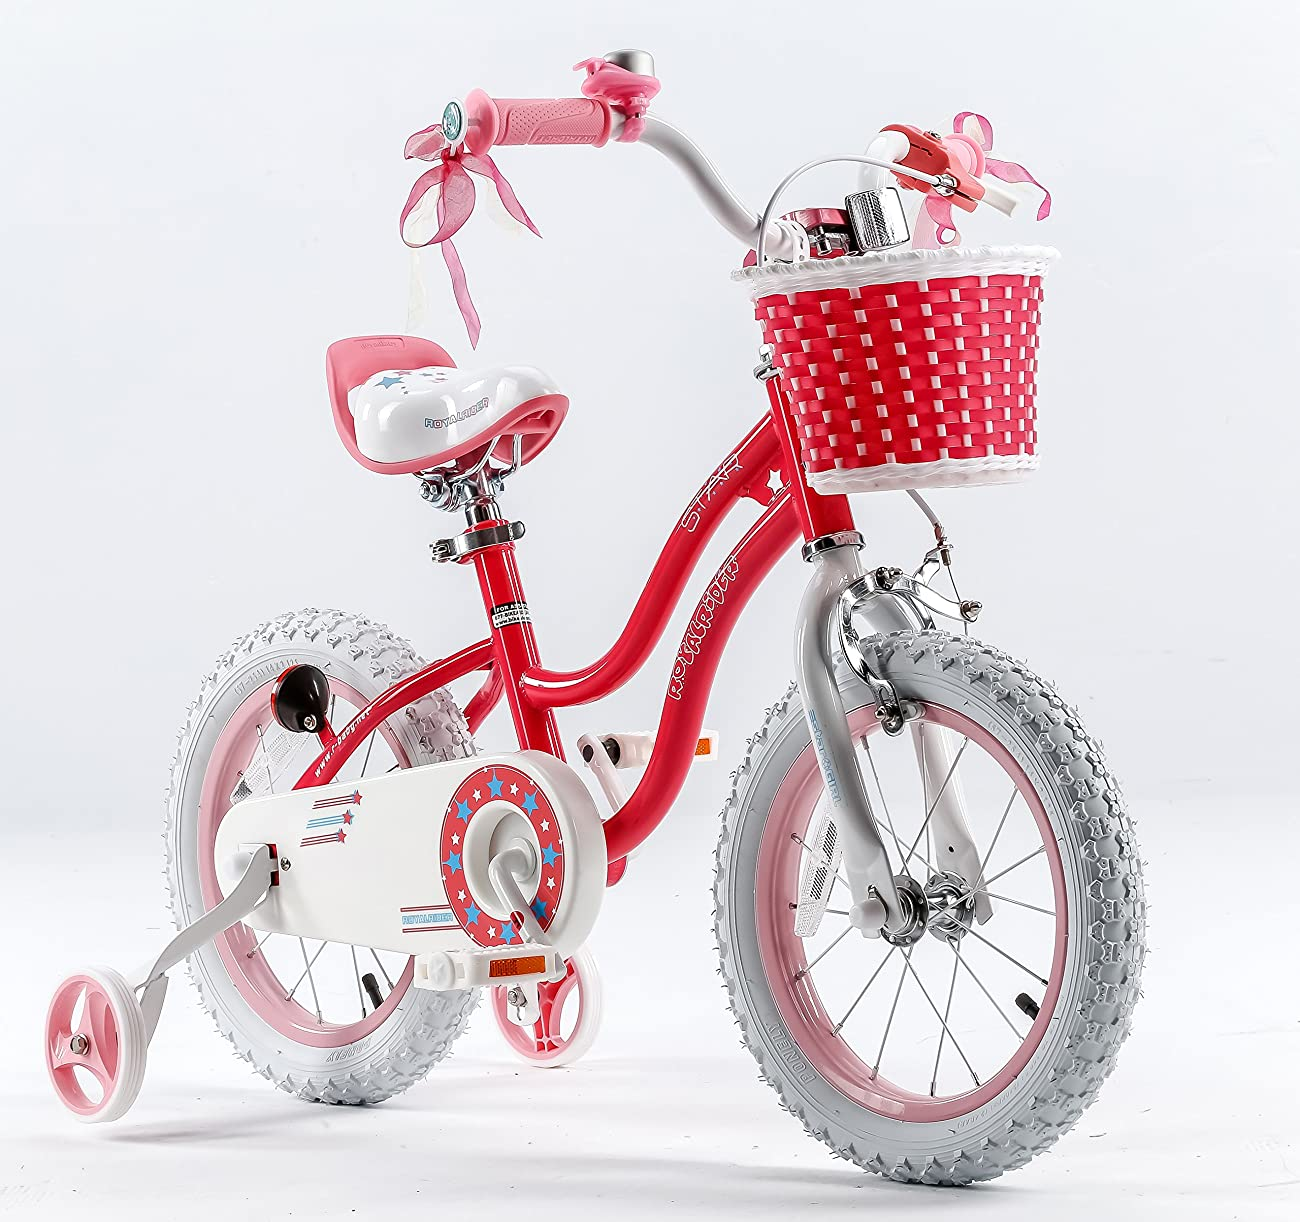 RoyalBaby Stargirl Girl's Bike with Training Wheels and Basket, Perfect Gift for Kids. 12 Inch, 14 Inch, 16 Inch, Blue / Pink 1